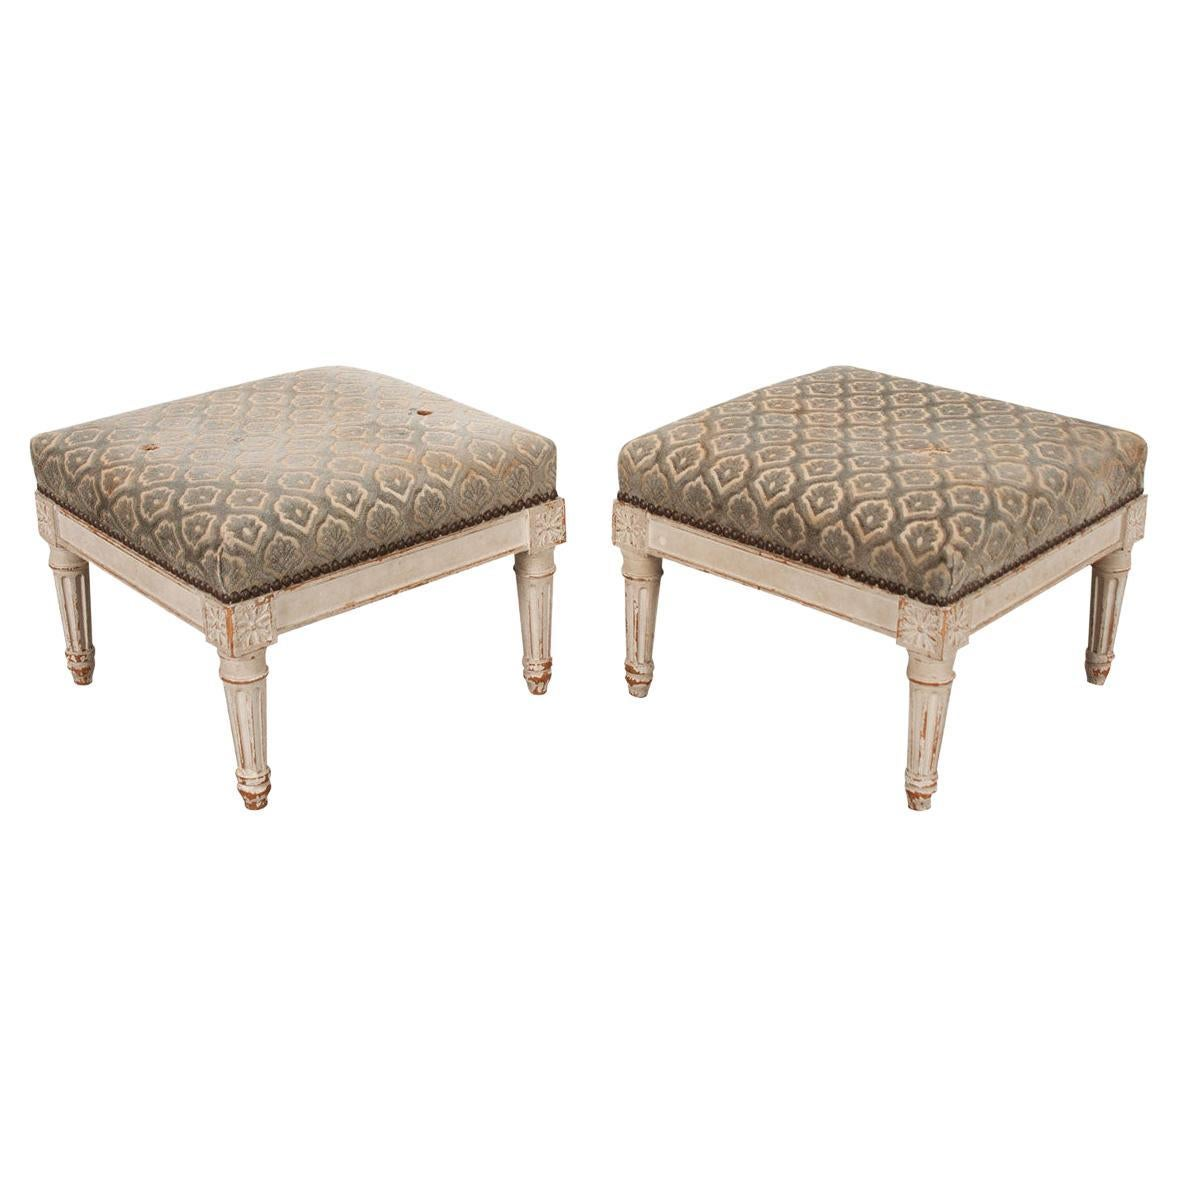 Pair of French 19th Century Louis XVI-Style Foot Stools